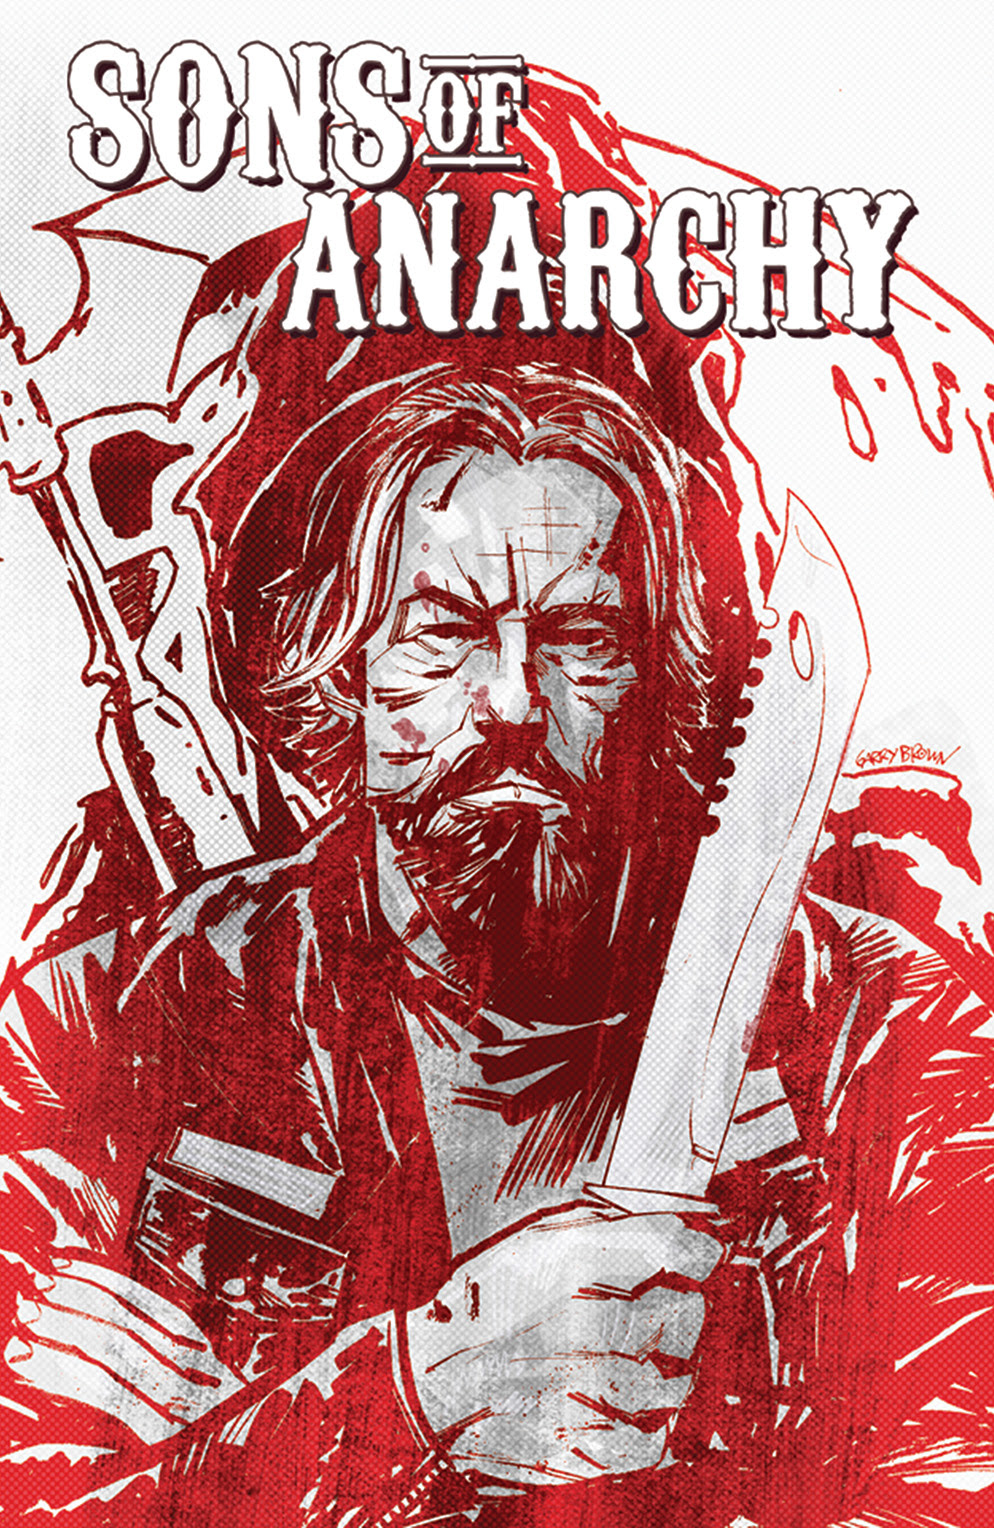 SONS OF ANARCHY #12 Cover by Garry Brown